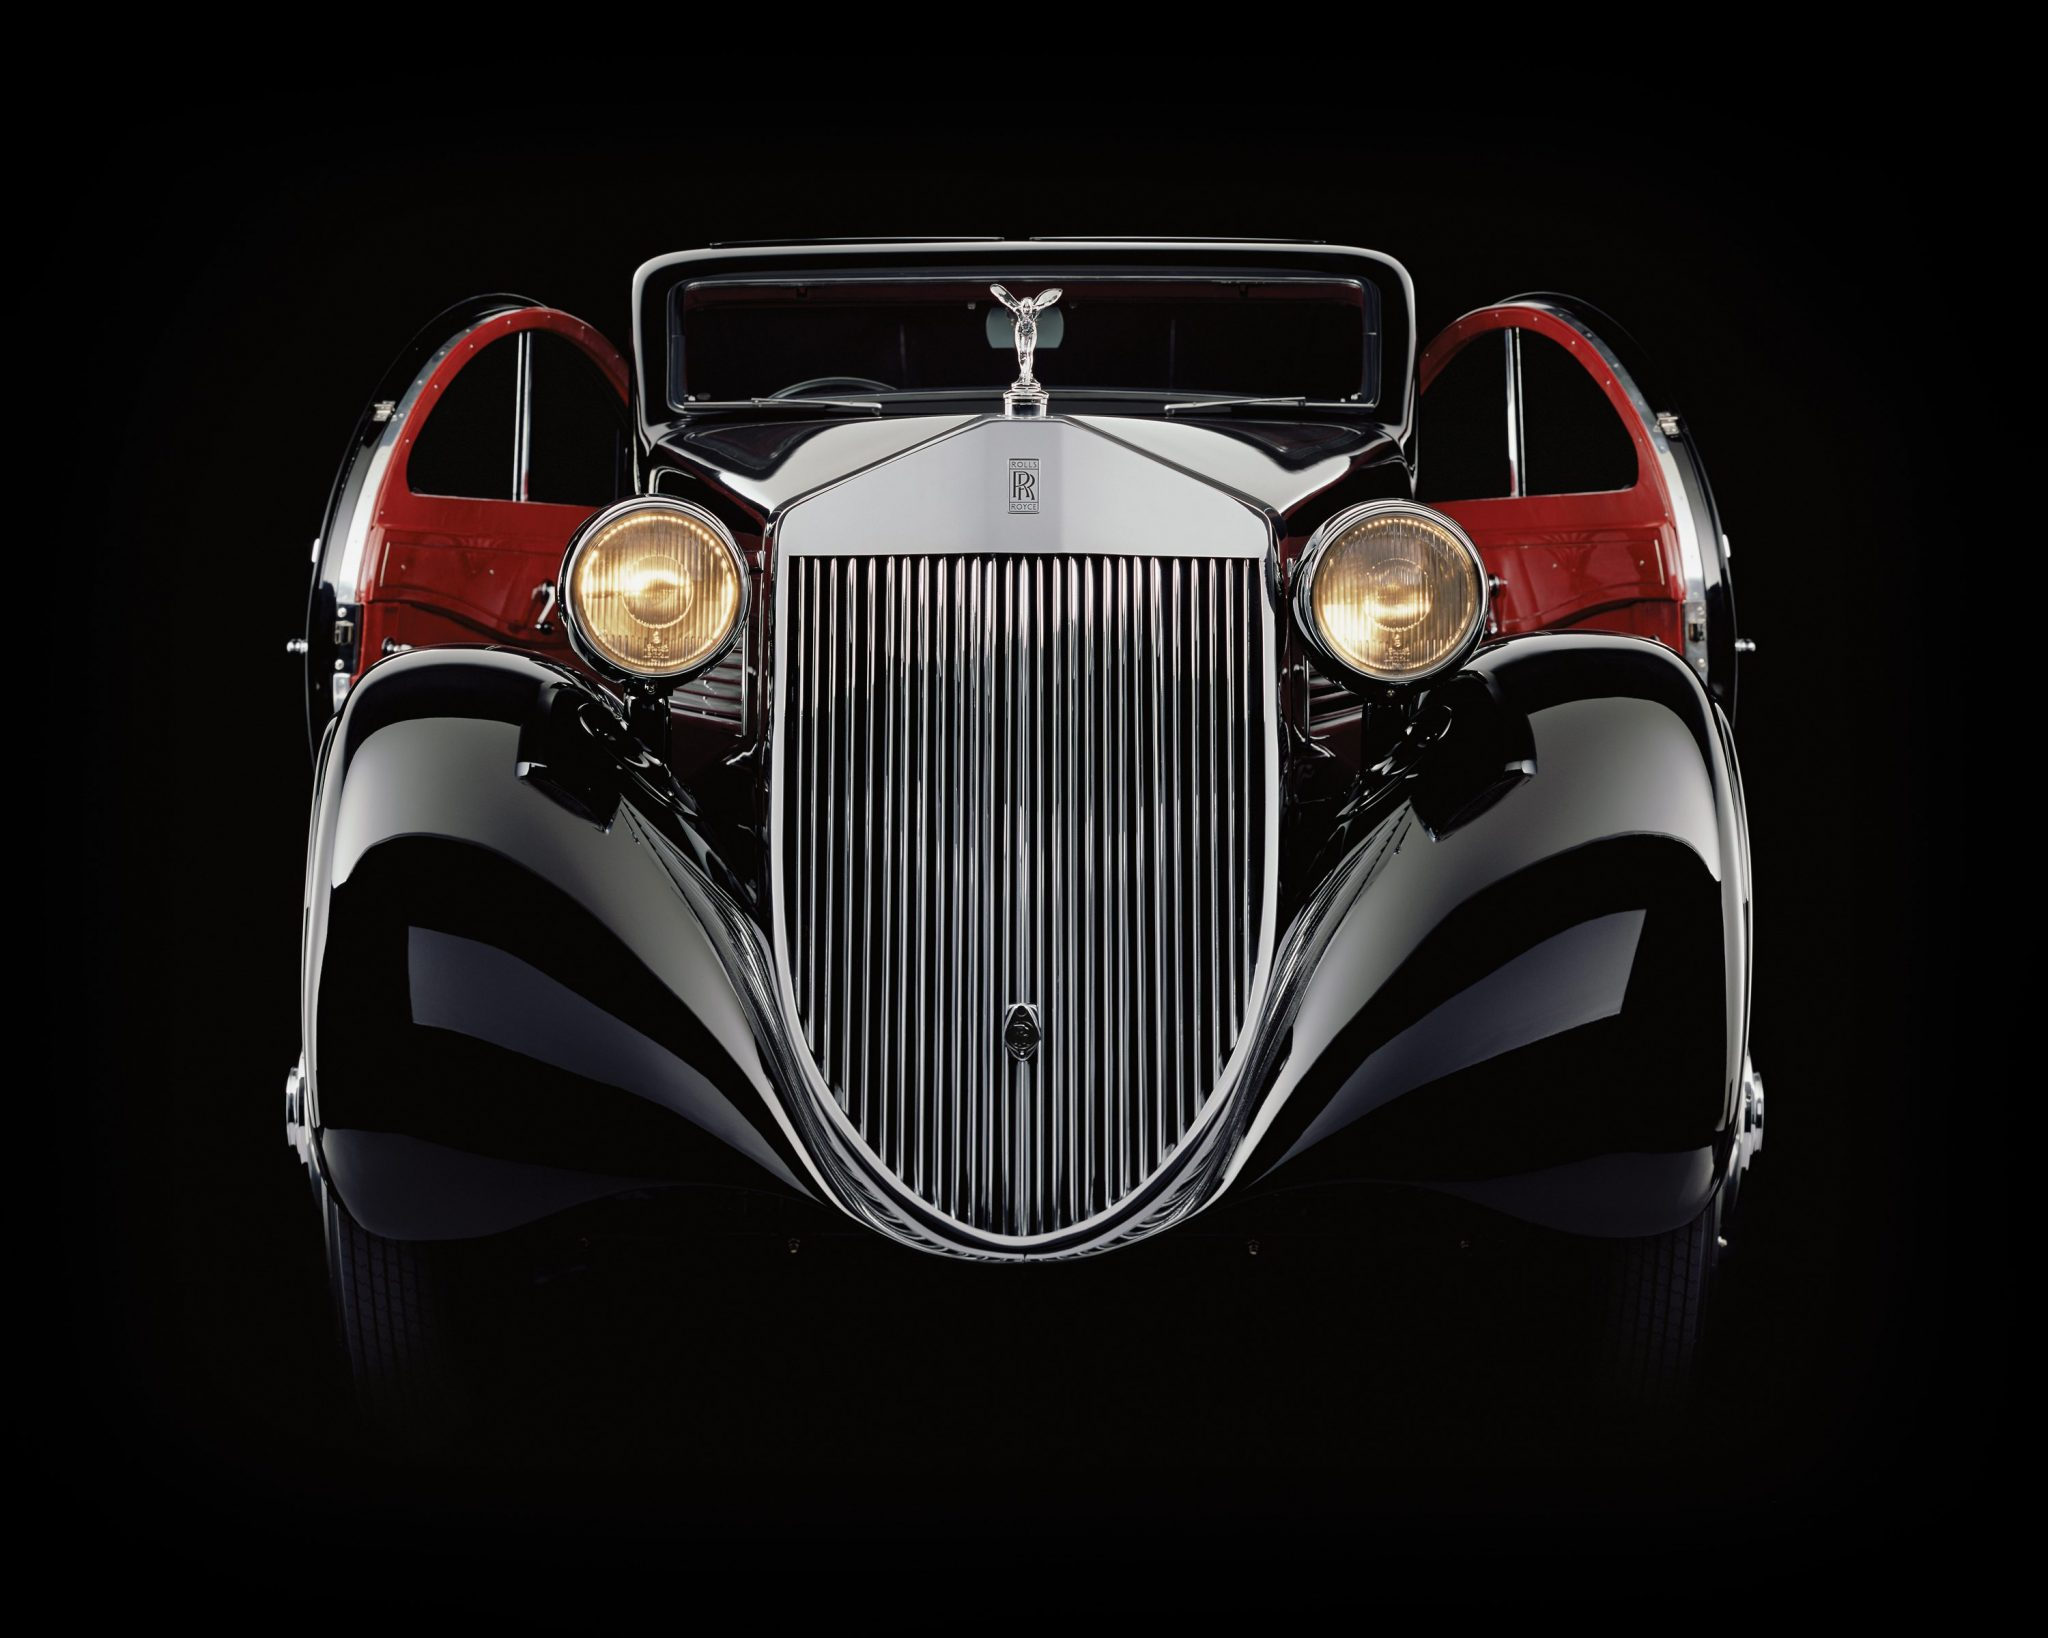 Rolls-Royce Phantom 1 Jonckheere Coupe Round Doors Open